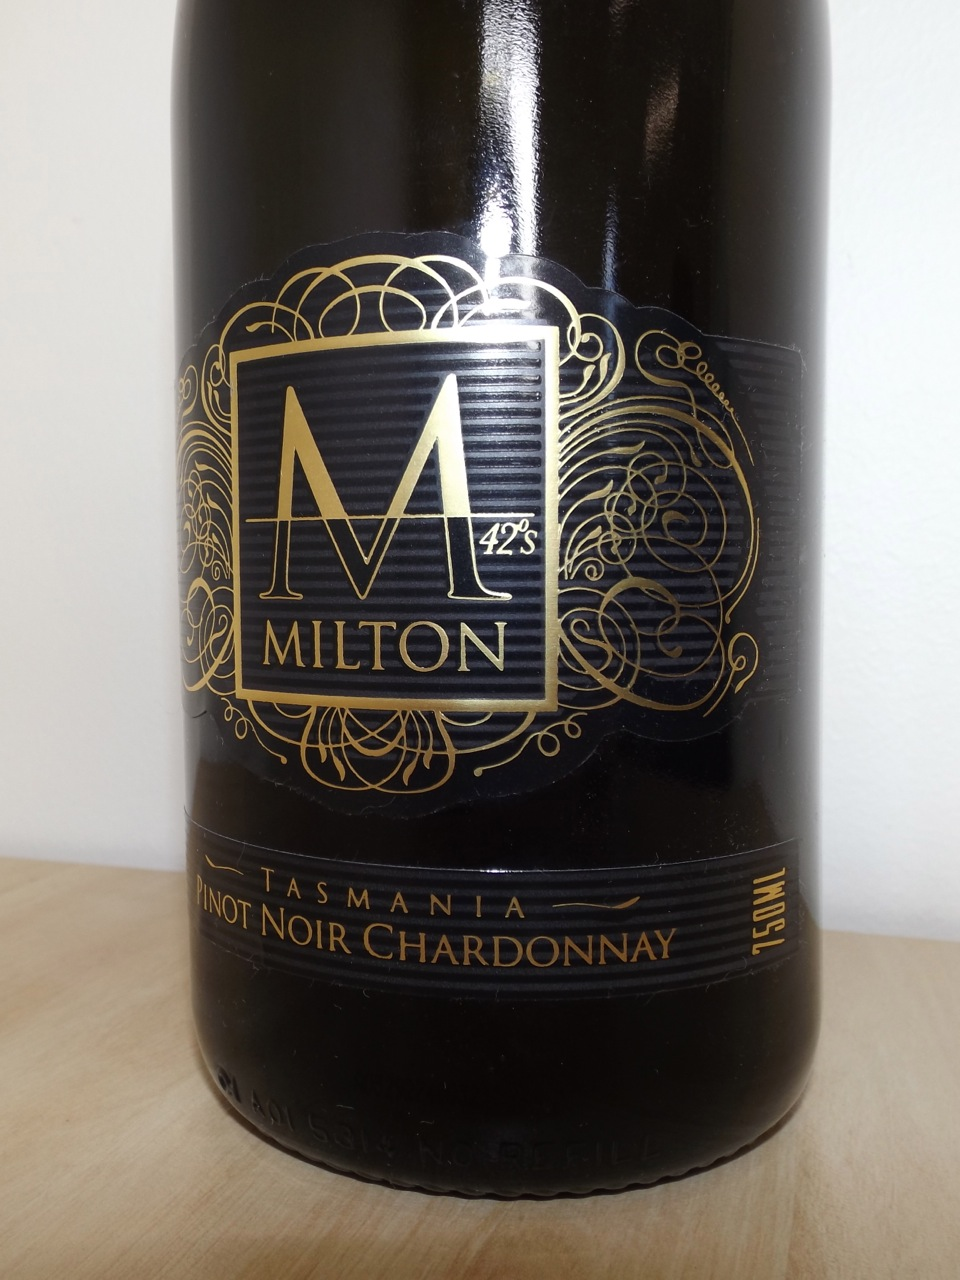 MILTON - Brand design, illustration, wine label design and stationery design.